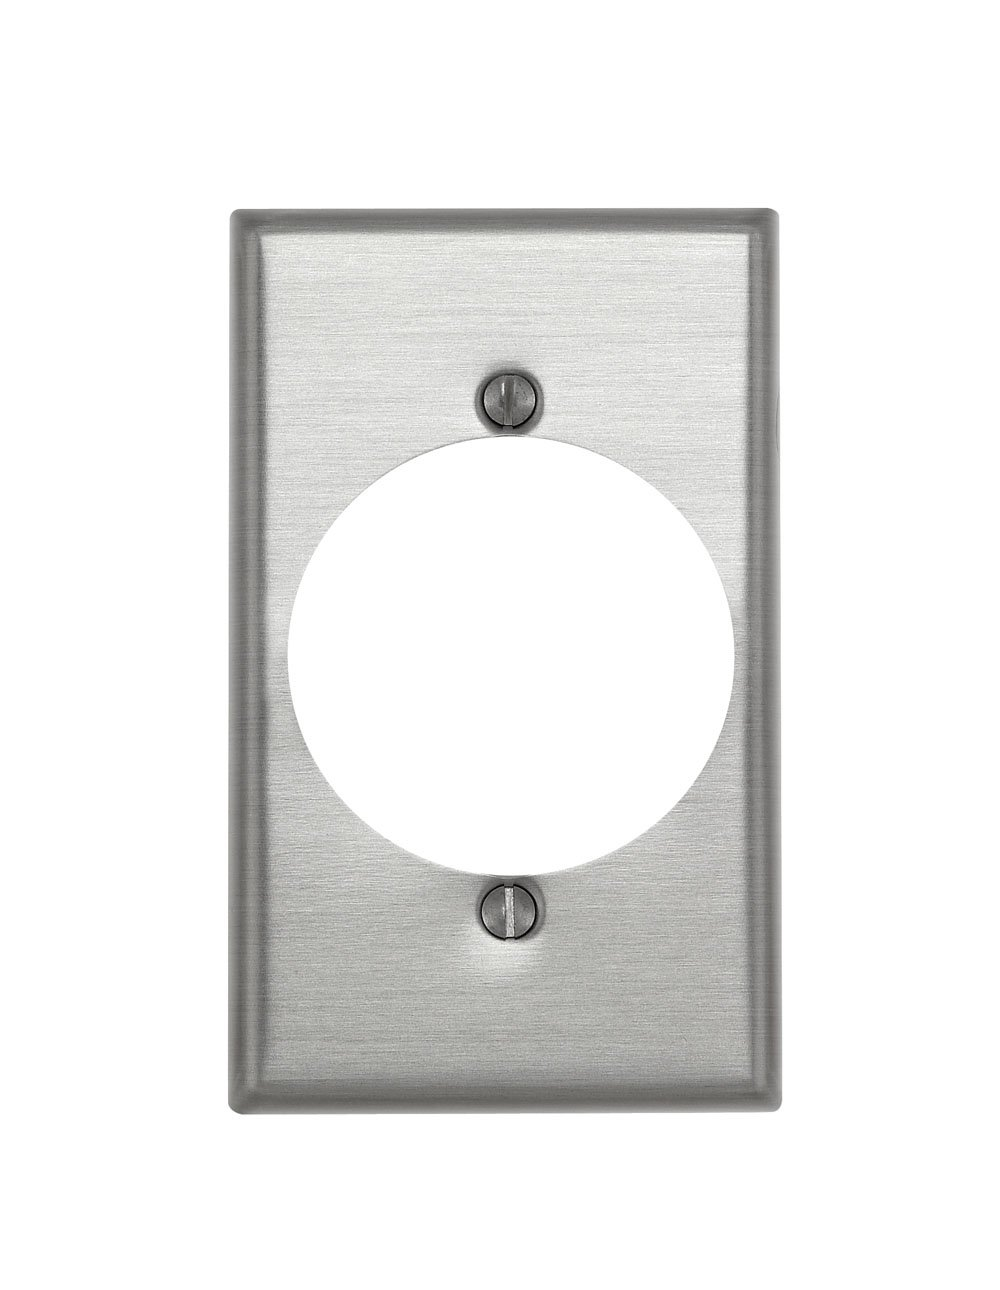 Leviton 83028 000-000 Receptacle Standard Size Wall Plate, 1 Gang, 4-1/2 in L X 2-3/4 in W 0.187 in T, Satin, Standard, Aluminum